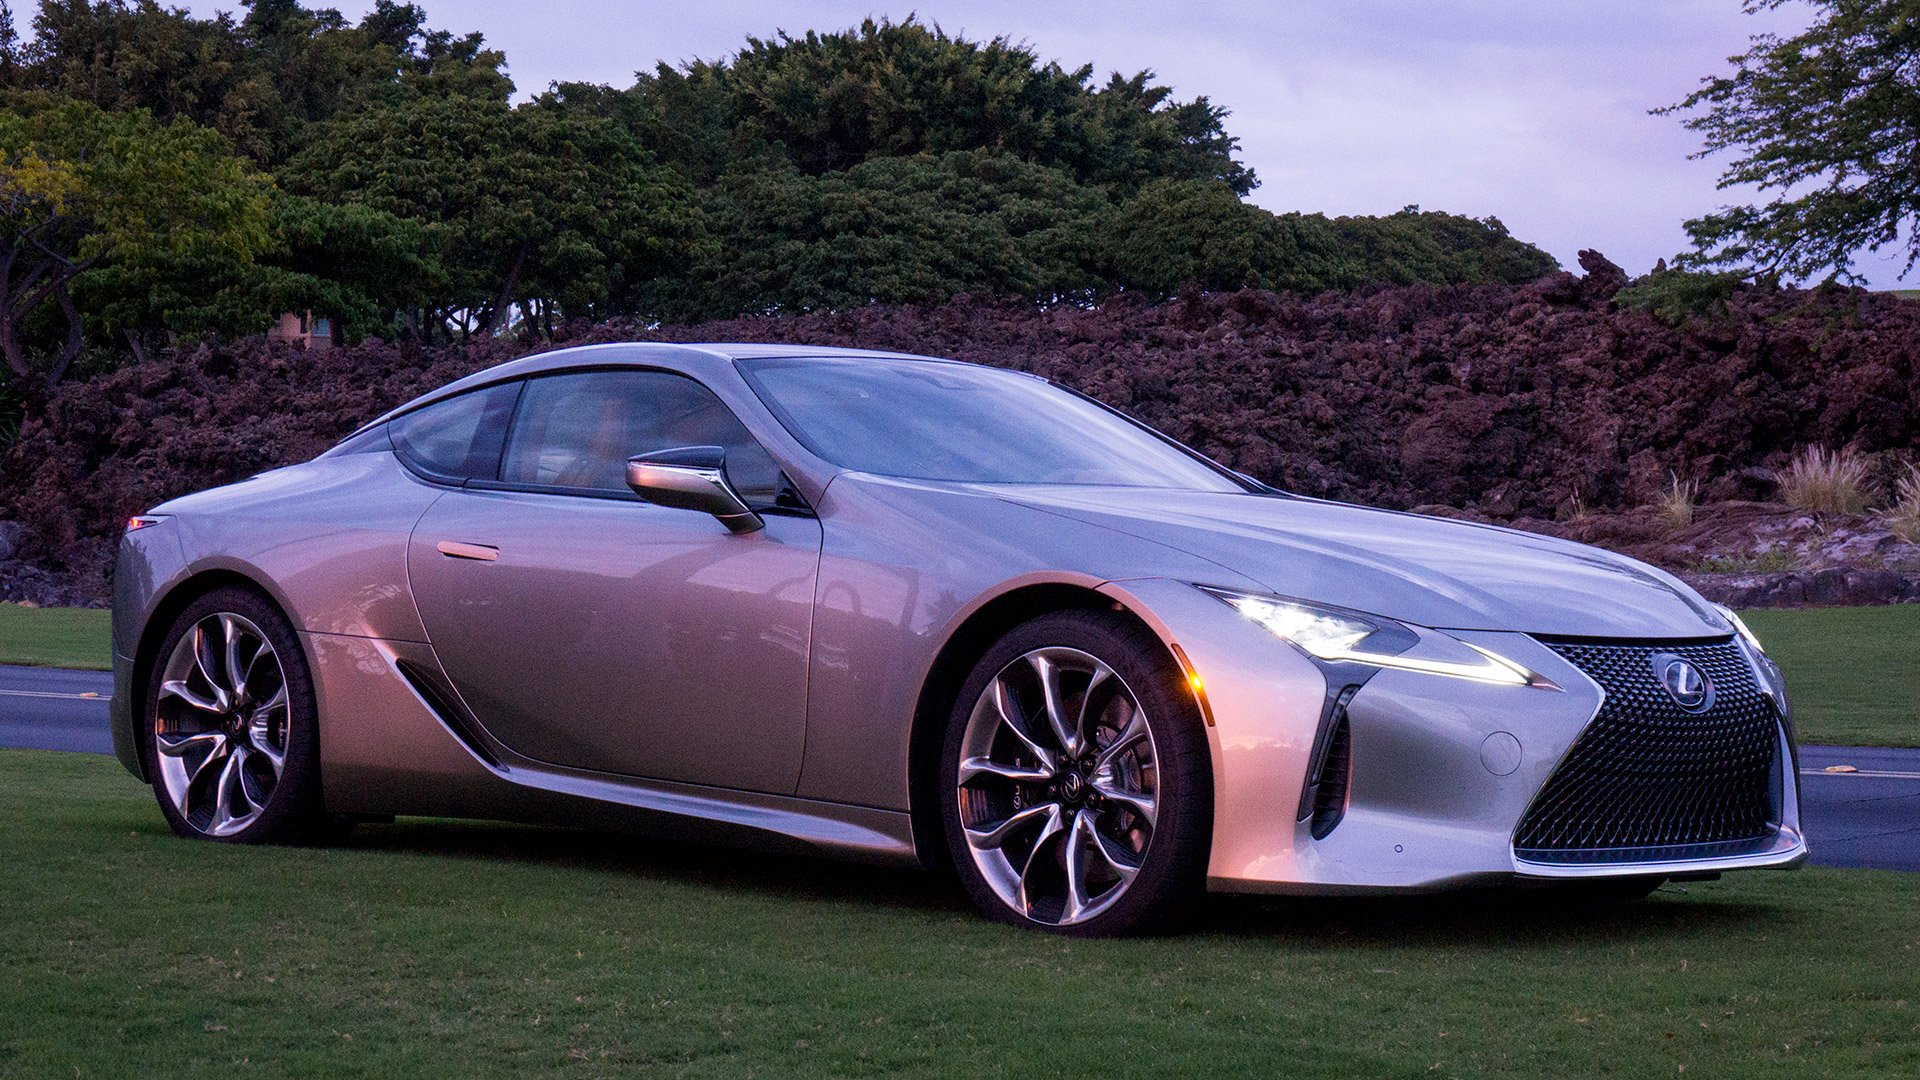 2018 lexus lc 500 lexus moves into the fast lane 95 octane. Black Bedroom Furniture Sets. Home Design Ideas